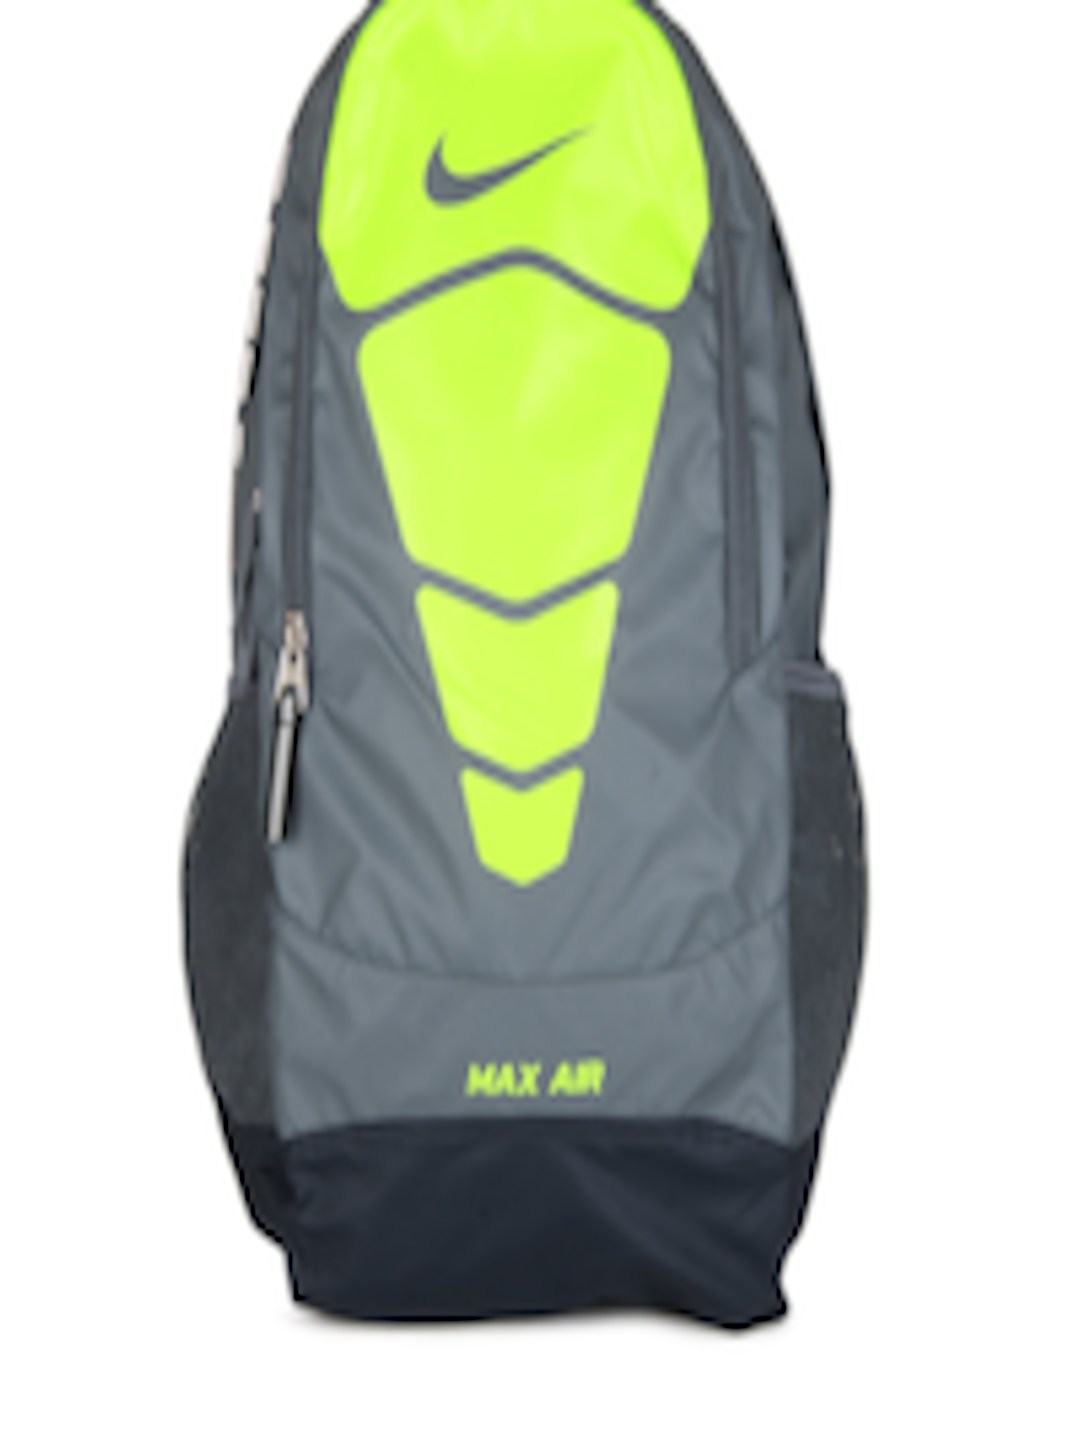 Buy Nike Unisex Grey Vapor Max Air Backpack Backpacks